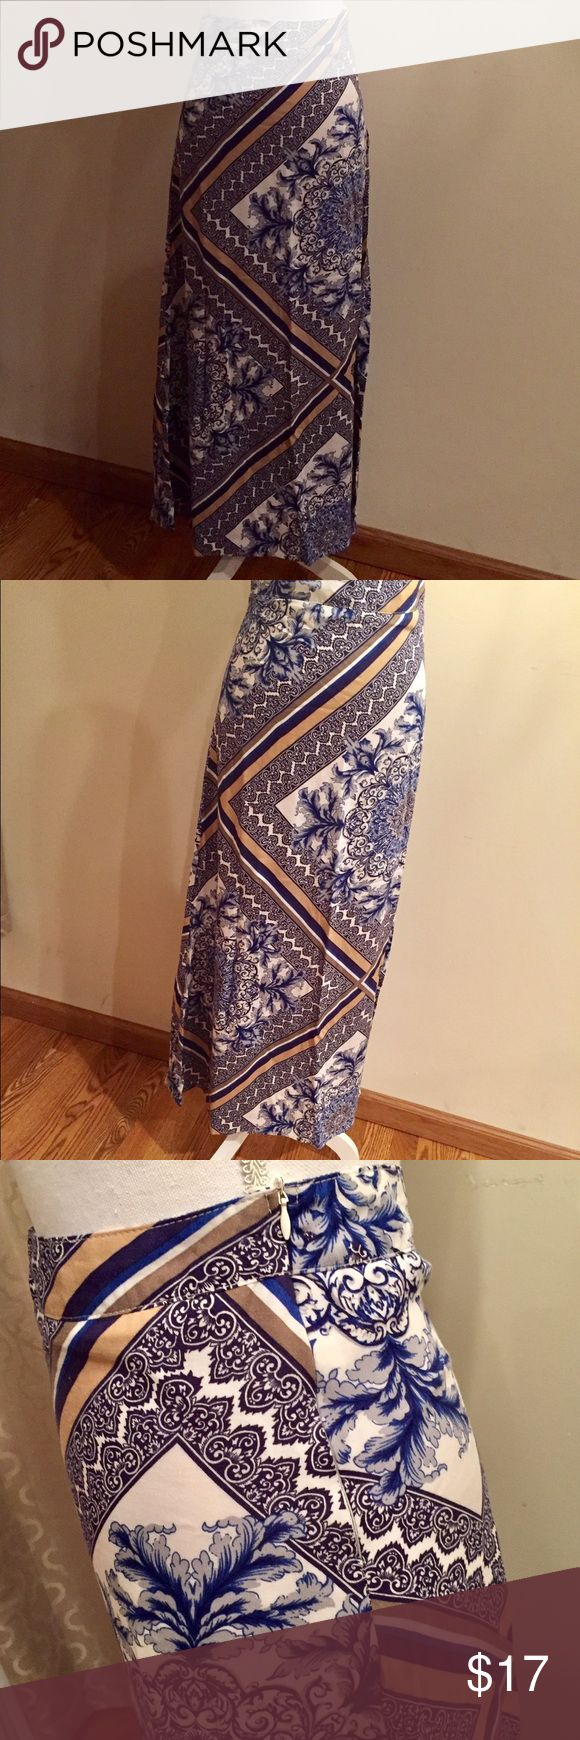 Skirt // REDUCED✨ Blue, White & Beige Maxi Skirt •size small •100% rayon, liner is 100% polyester •zipper along left hip (about 7 inches) •reaches the floor, one length all around  Super comfy, pair with tan sandals & a plain white fitted tank top⛵️🏖☀️ Oxford Circus Skirts Maxi